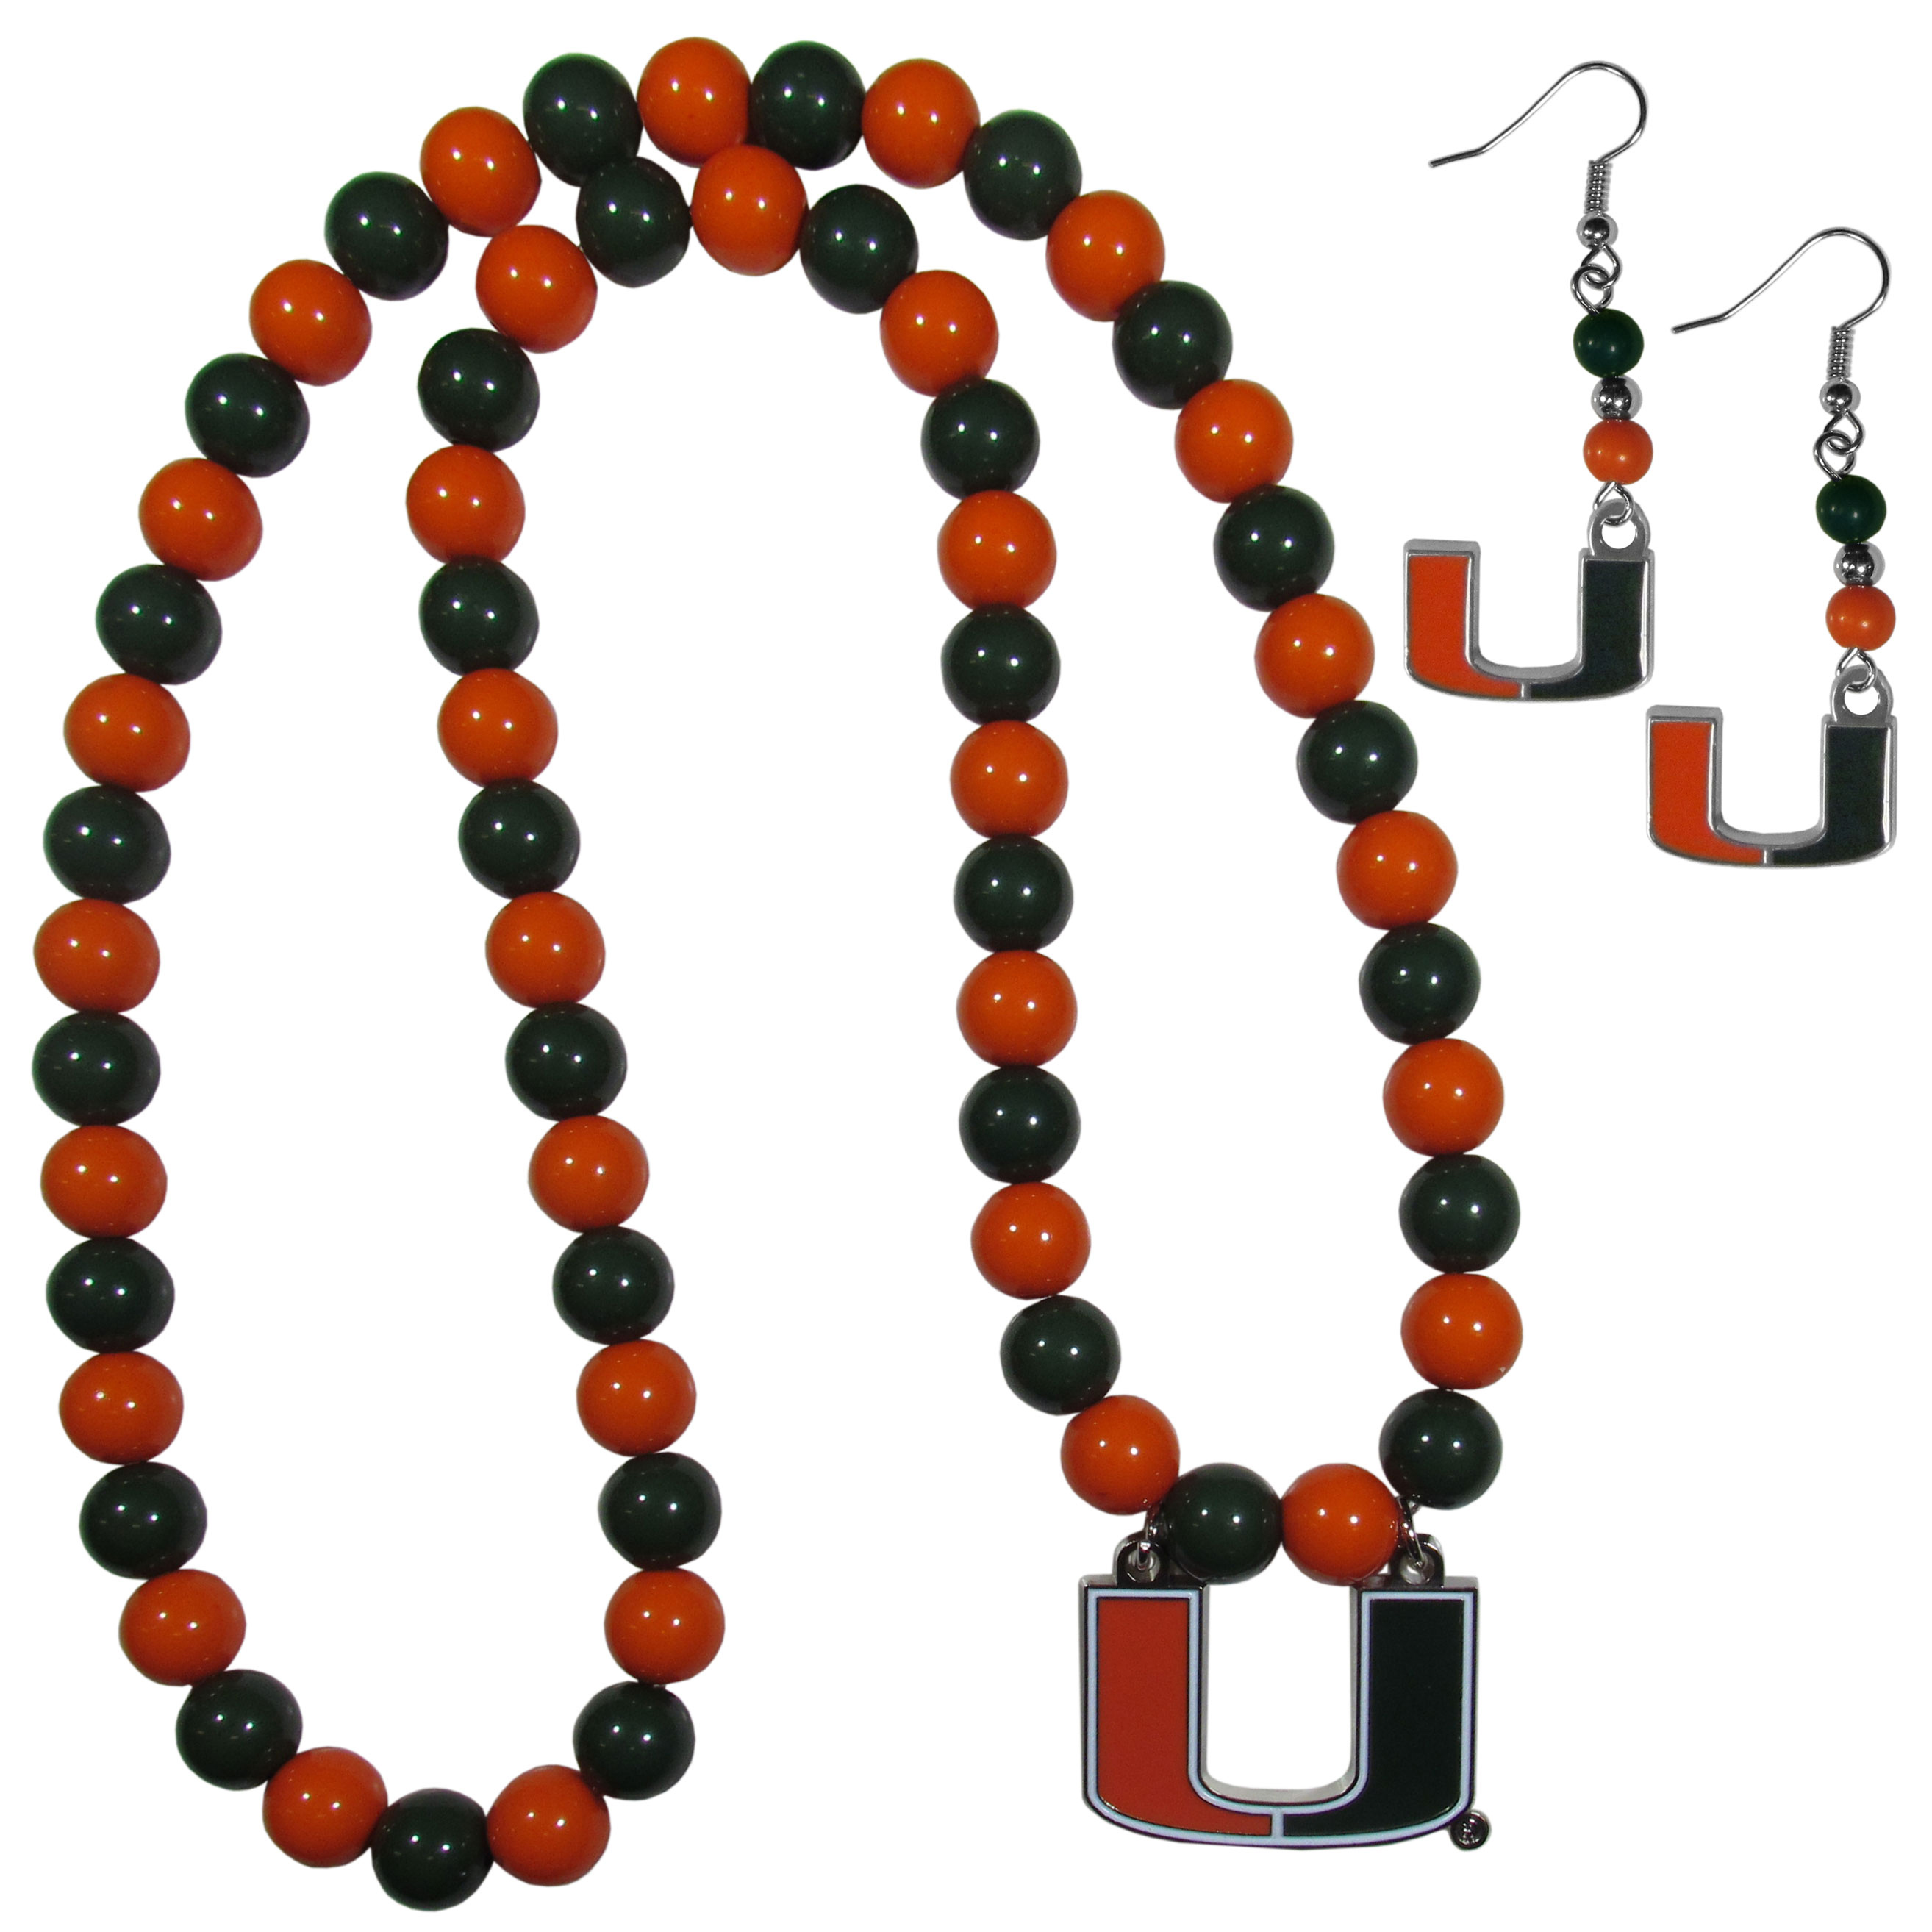 Miami Hurricanes Fan Bead Earrings and Necklace Set - These fun and colorful Miami Hurricanes fan bead jewelry pieces are an eyecatching way to show off your team spirit. The earrings feature hypoallergenic, nickel free fishhook post and 2 team colored beads with a beautifully carved team charm to finish this attractive dangle look. The mathcing bracelet has alternating team colored beads on a stretch cord and features a matching team charm.